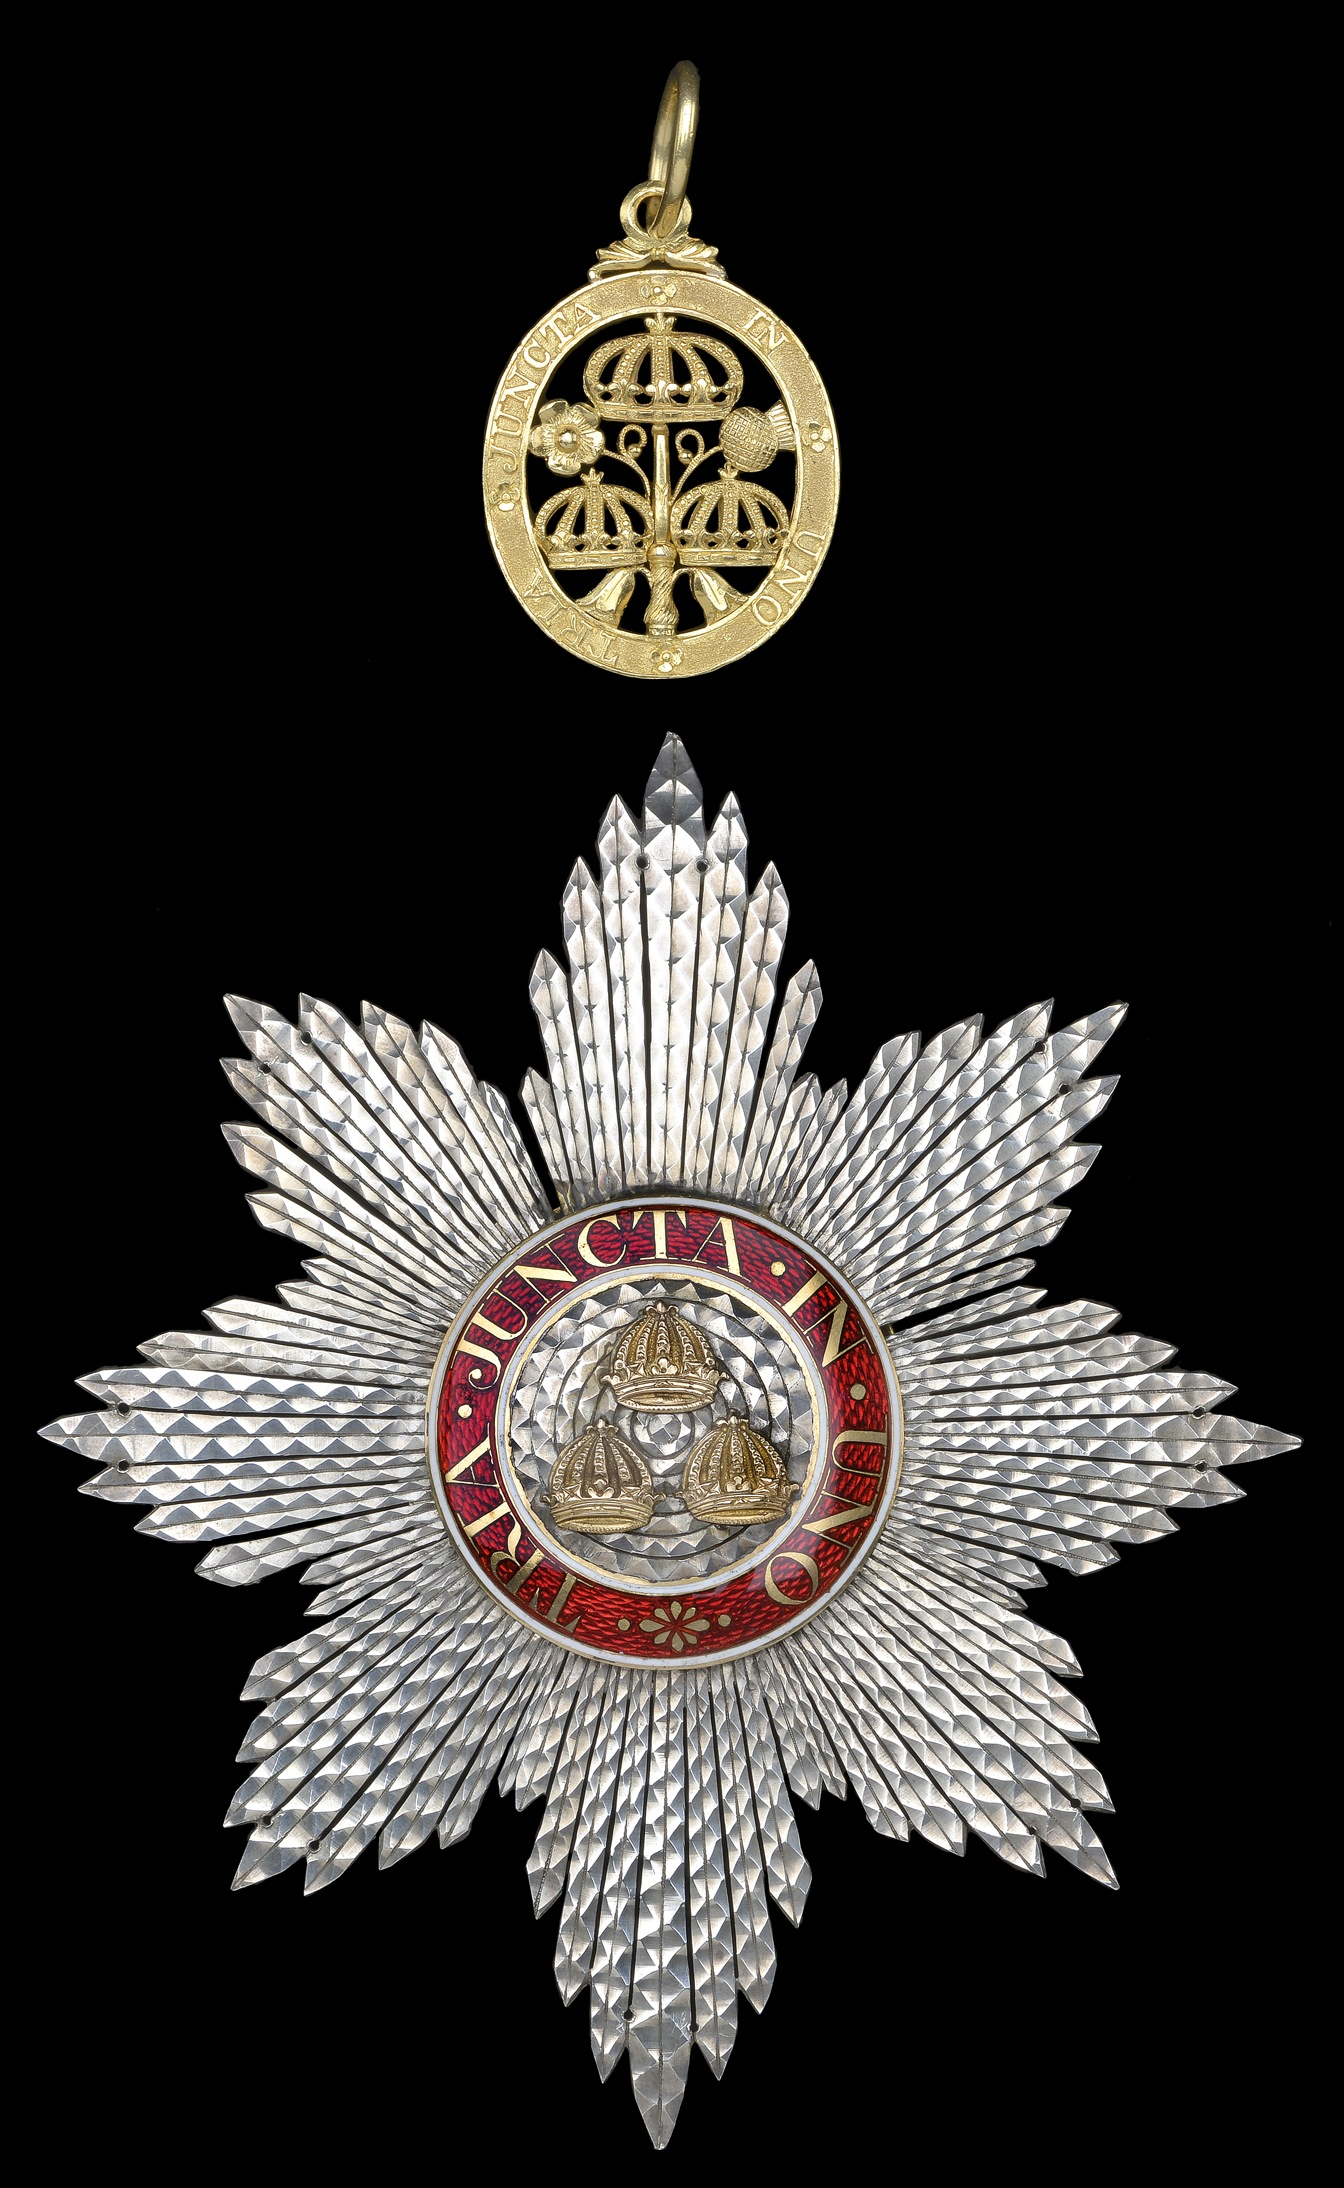 Figure 1 – Sash Badge & Star of the Knight Companion of the Bath (K.B.). Image courtesy of DNW